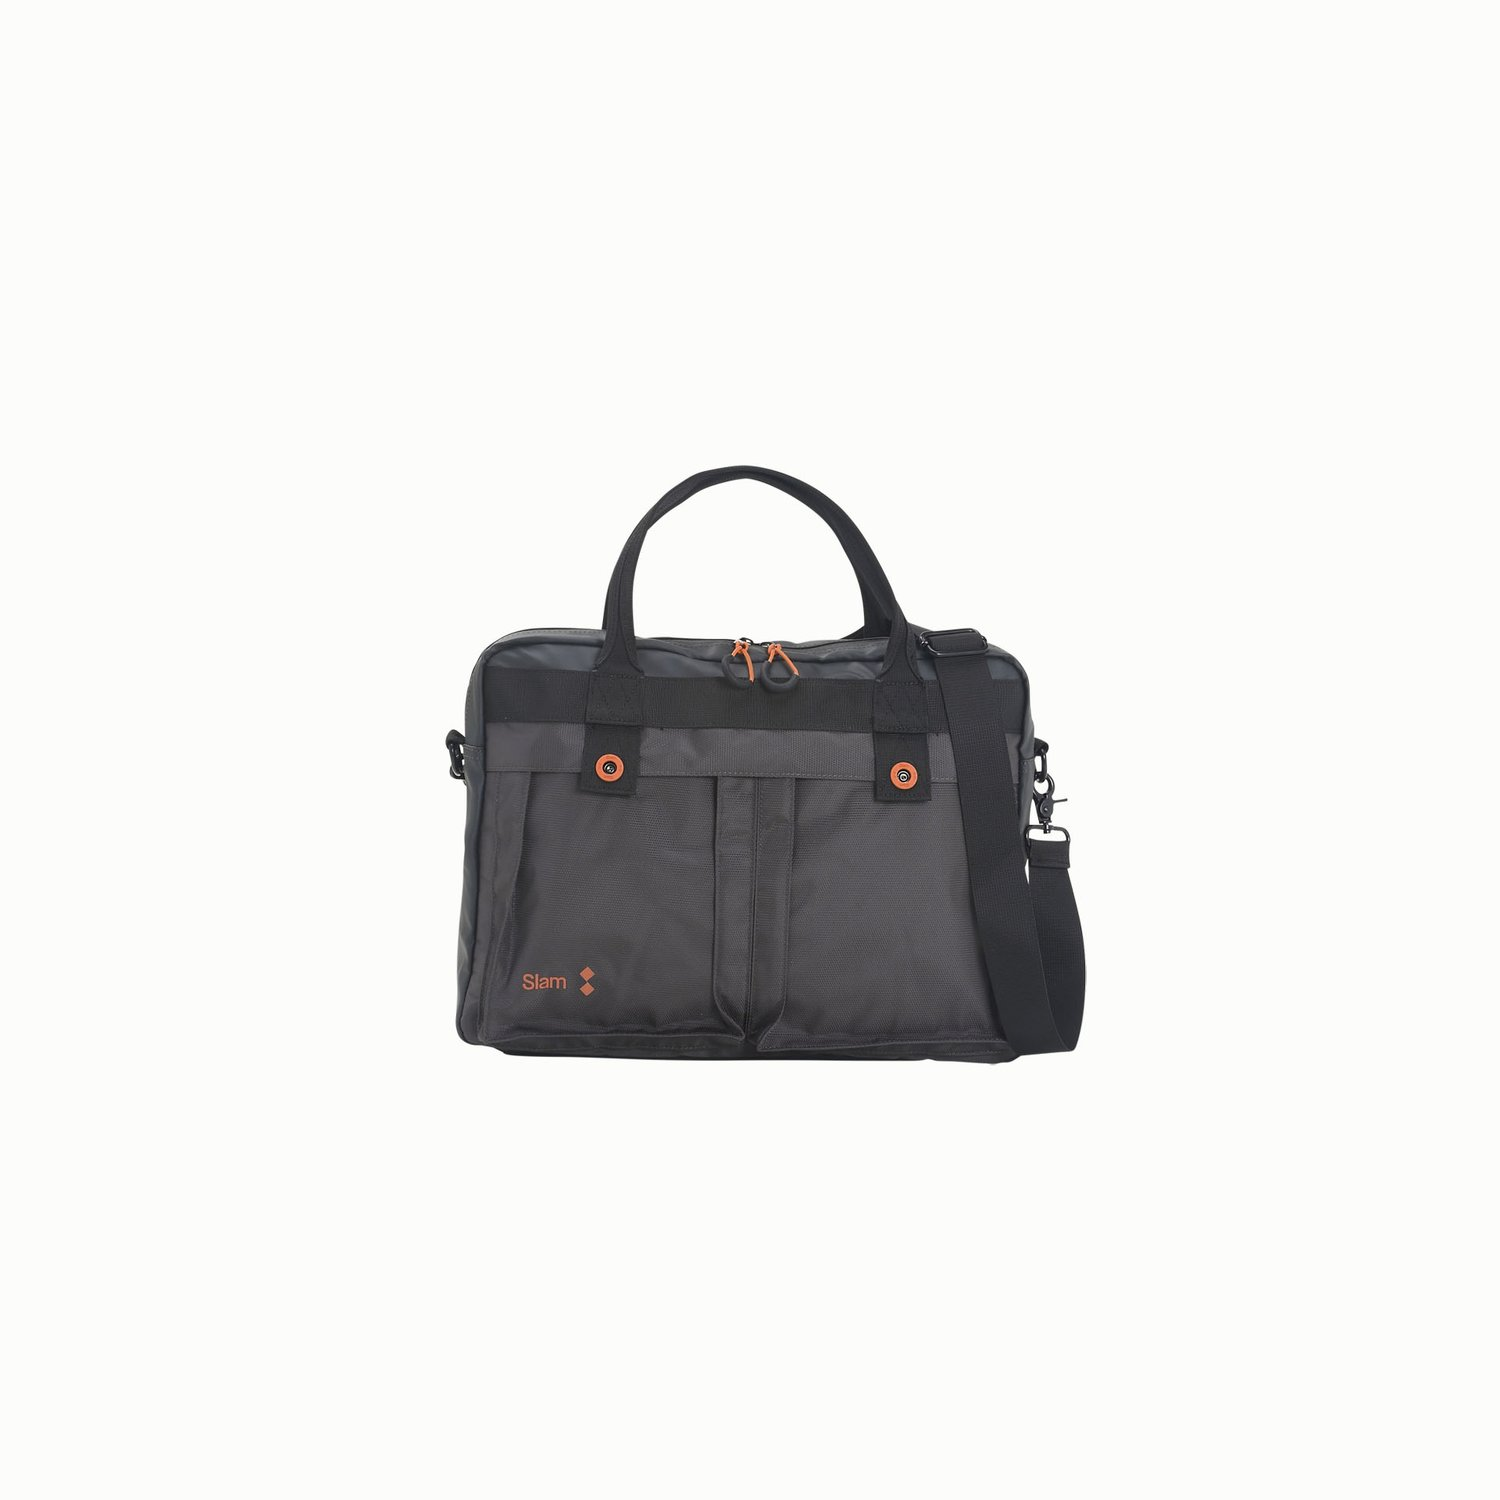 A235 Bag - Shark Grey